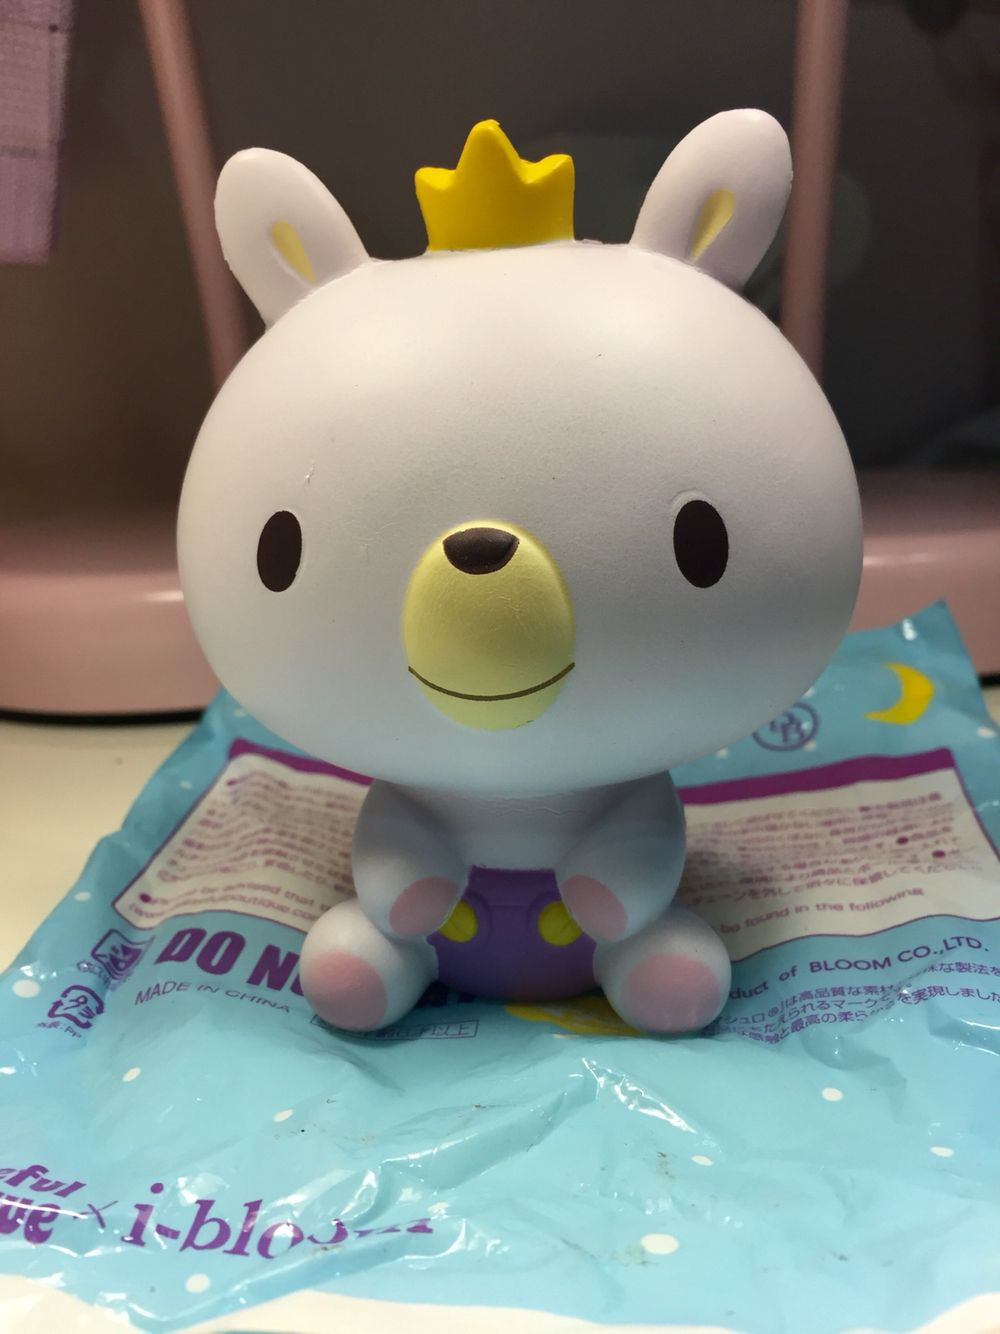 Squishy Toys With Slime In It : Snowy i-bloom Christmas Toys 2016 Pinterest Squishies, Kawaii and Slime